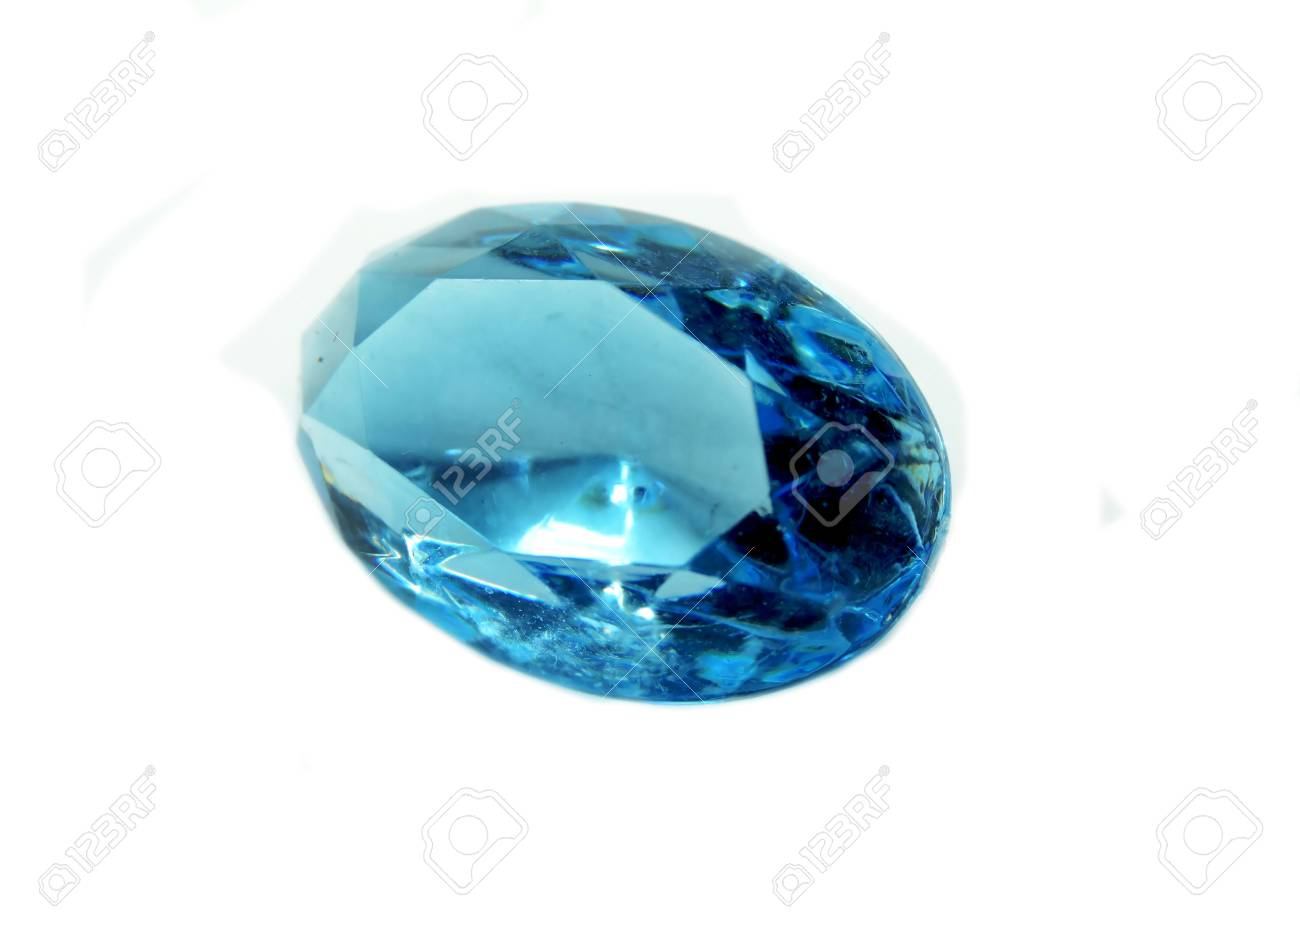 diamond stone stock sapphire photo aquamarine jewel gem group